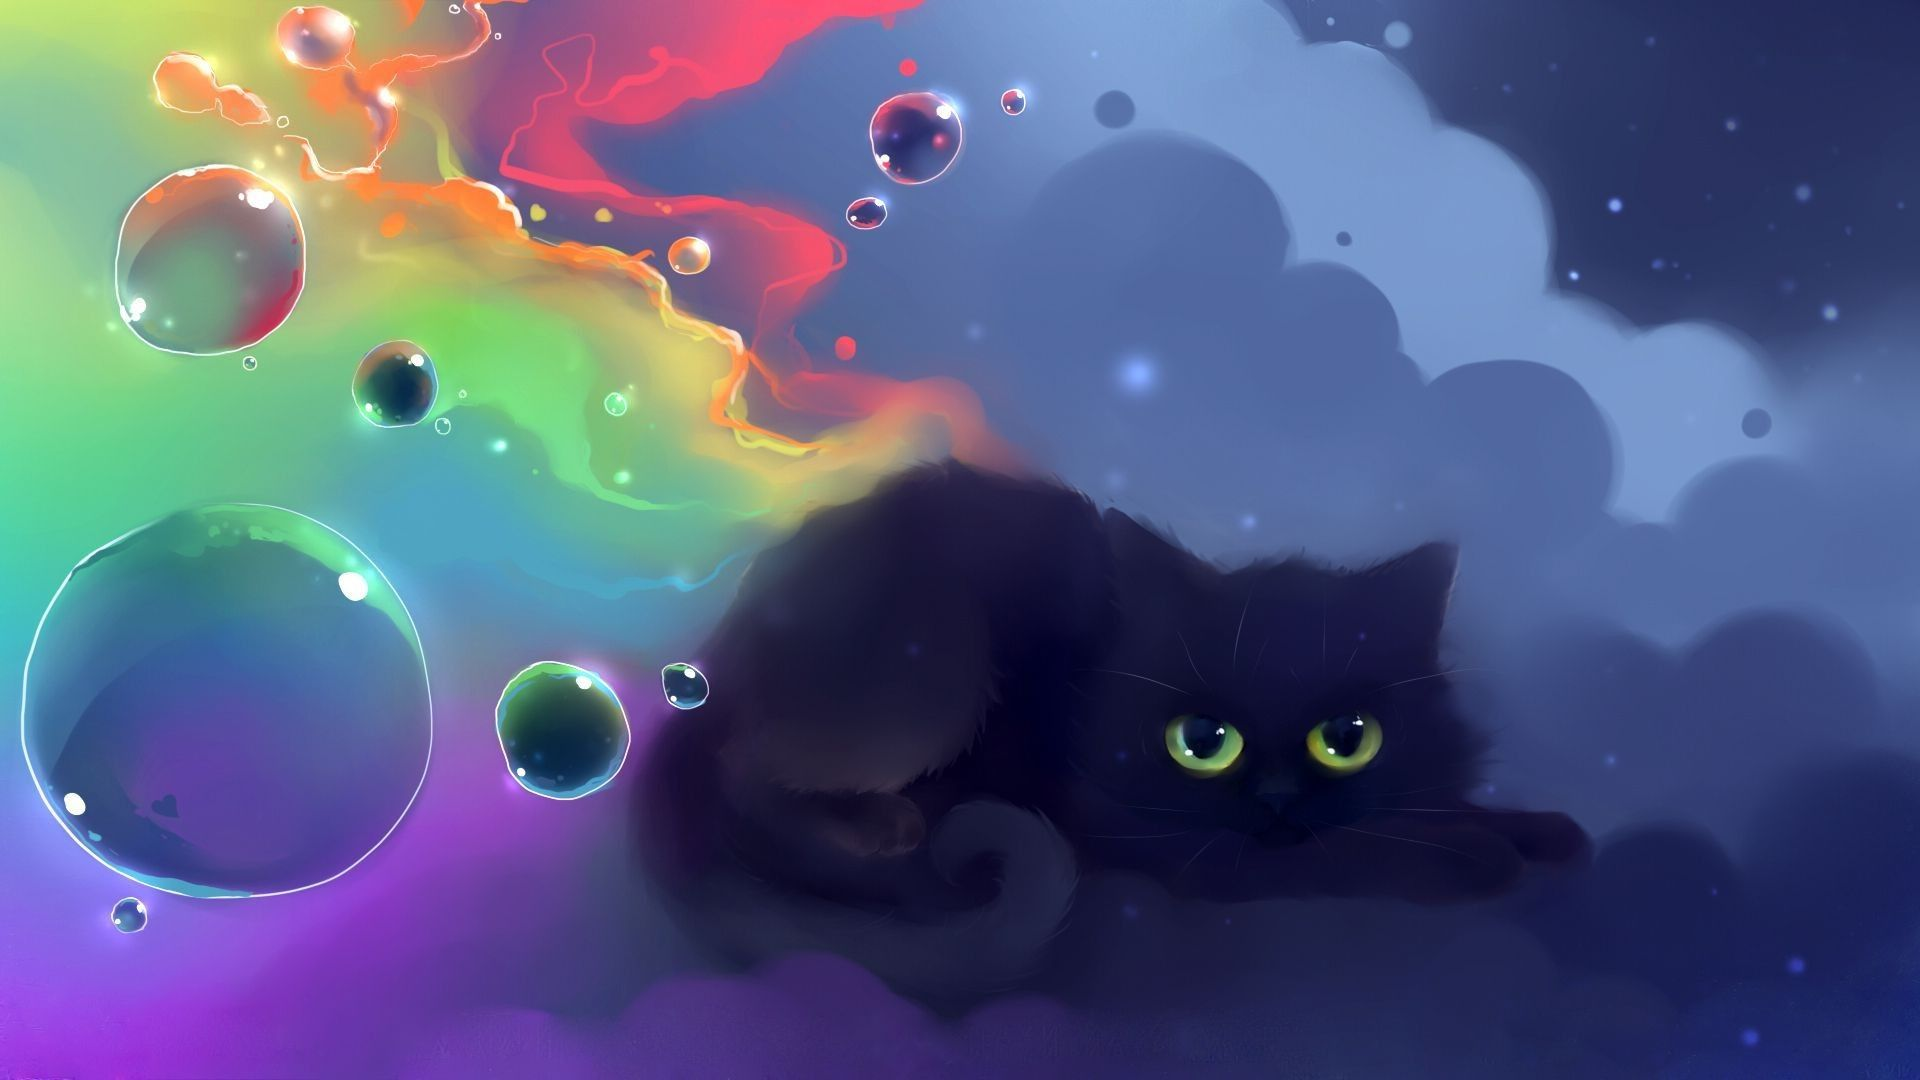 1920x1080 Cute Black Cat Wallpaper Hvgj Gatti Animali Sfondi